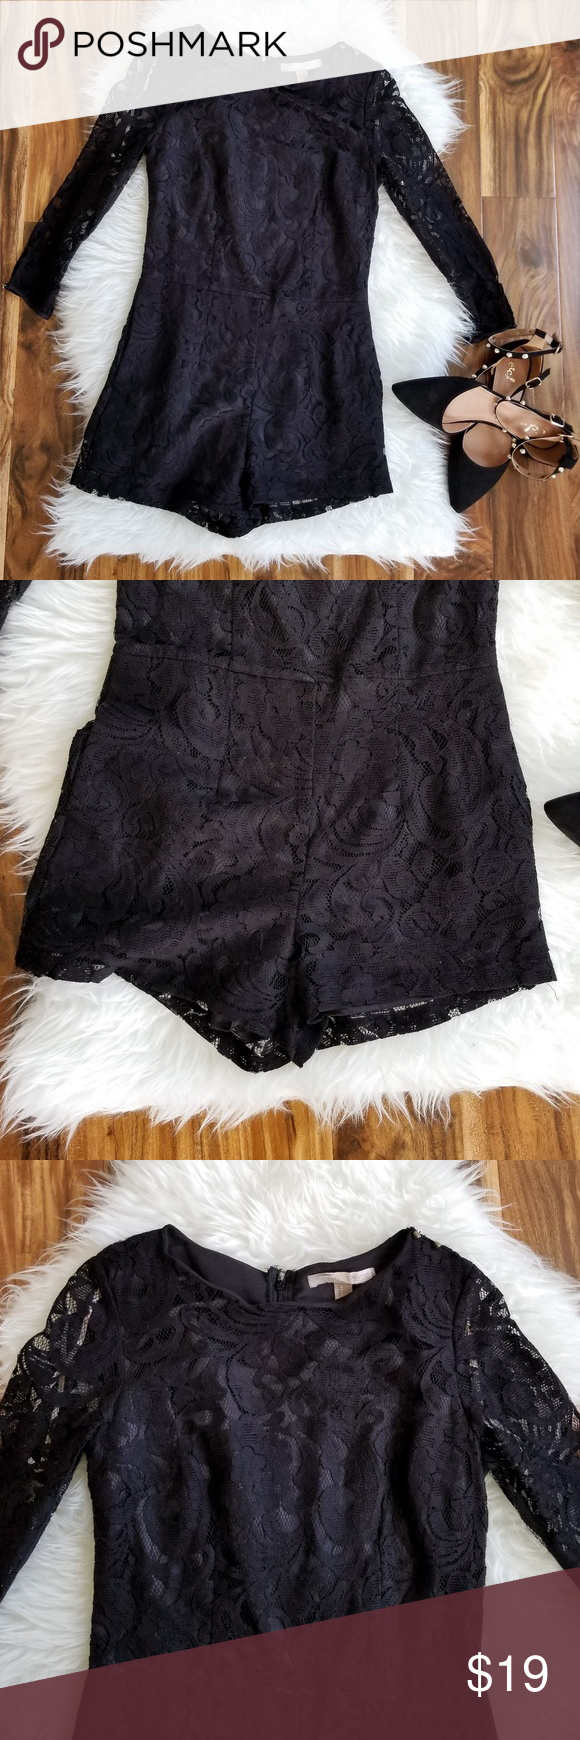 3cff5aa197b Forever 21 Black Lace Romper NWT Forever 21 SIZE Small Black lace romper  with long sleeves. Zipper closure on back. New with tags! Forever 21 Pants  ...